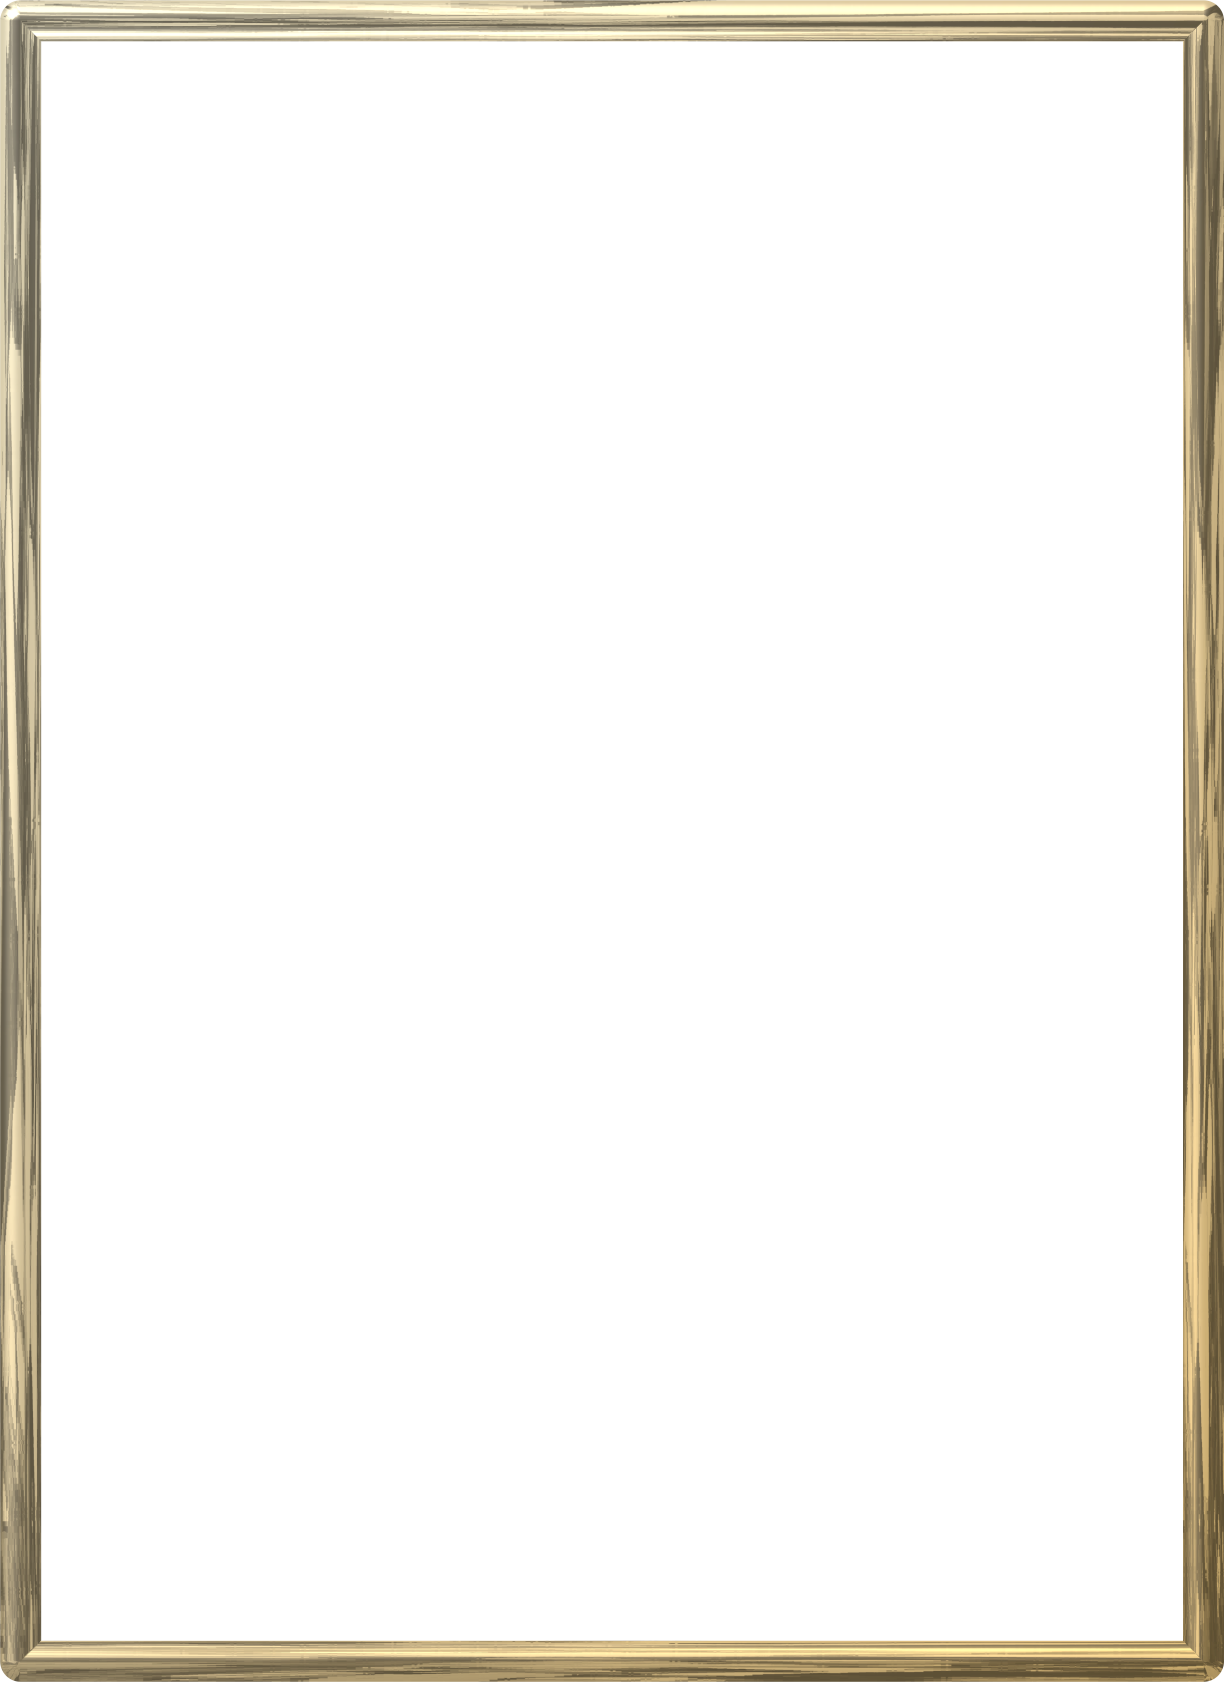 Golden border png. Gold frame photo mart